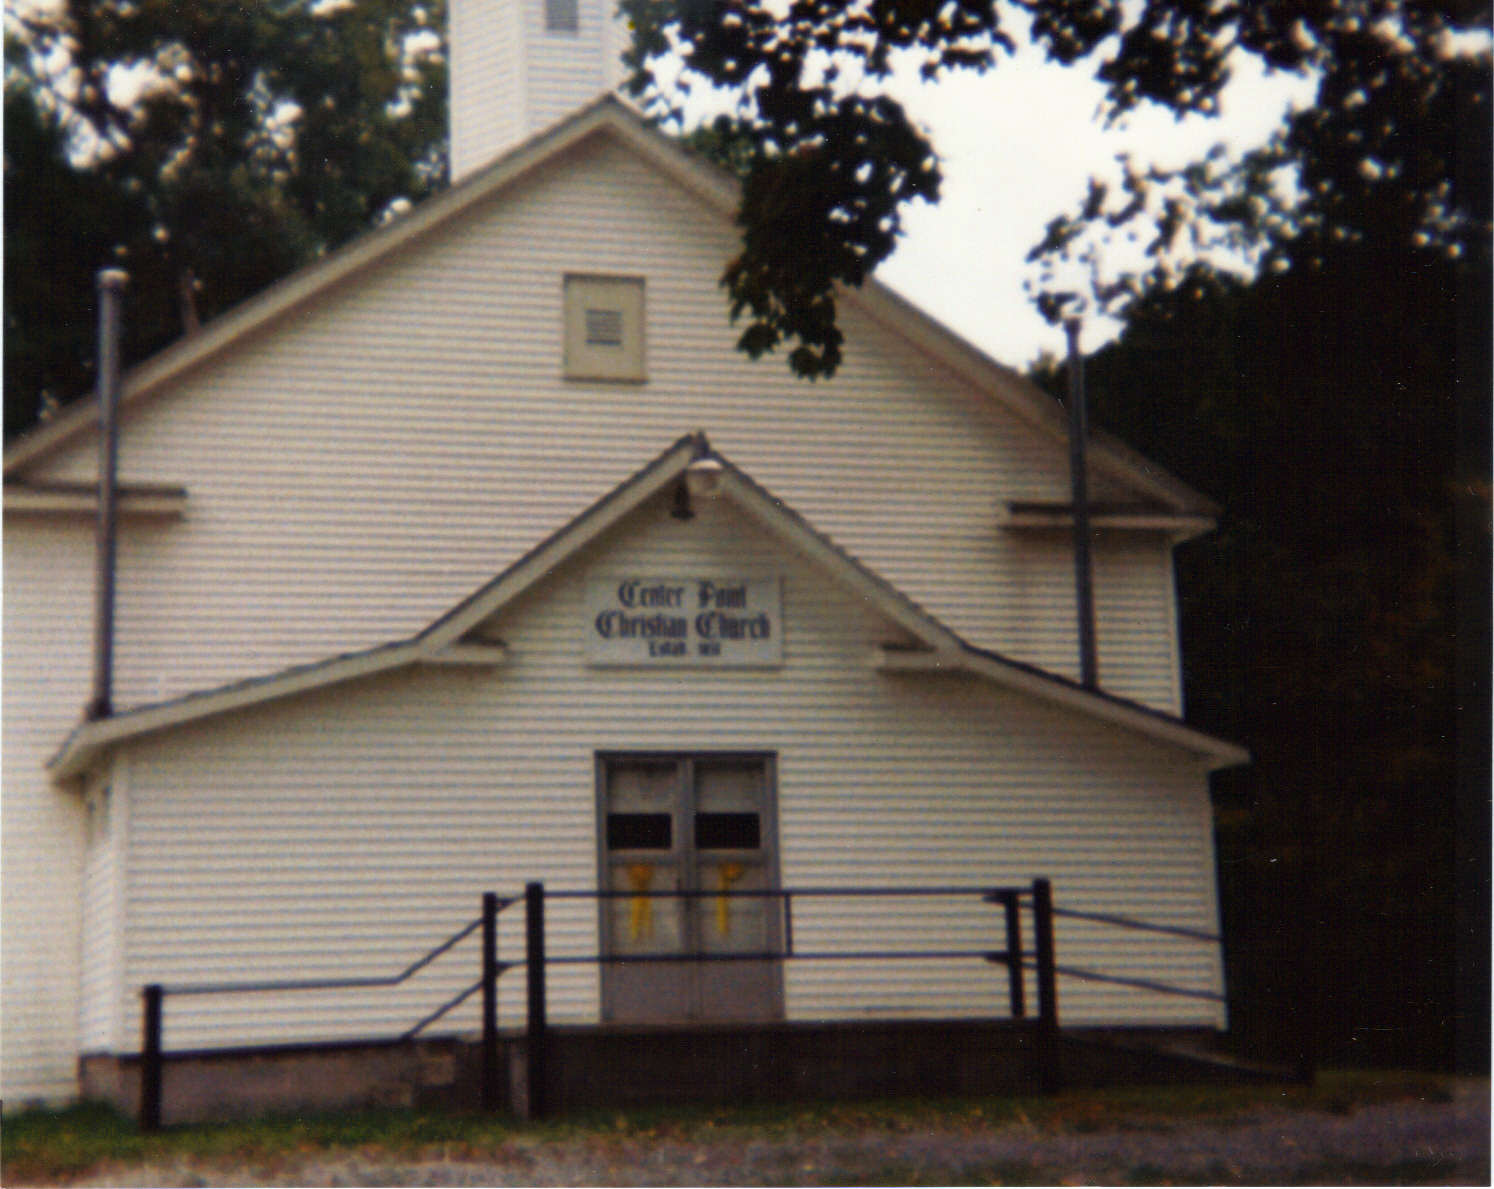 Center Point Christian Church